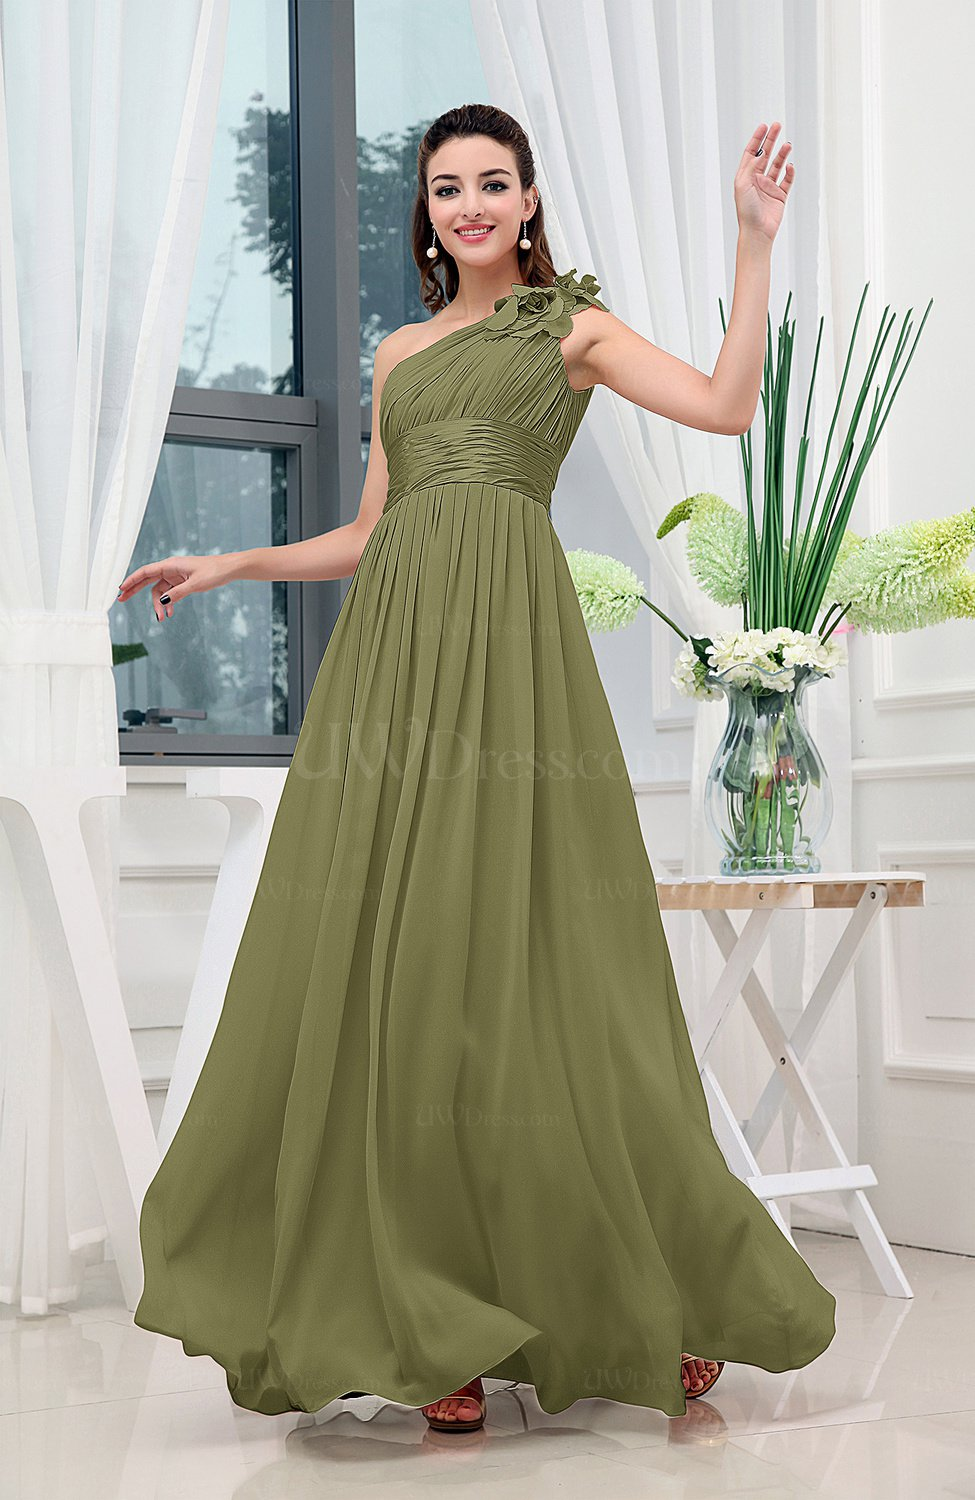 22710e6057d Olive Green Classic A-line One Shoulder Sleeveless Zipper Sash Cocktail  Dresses (Style D26602)